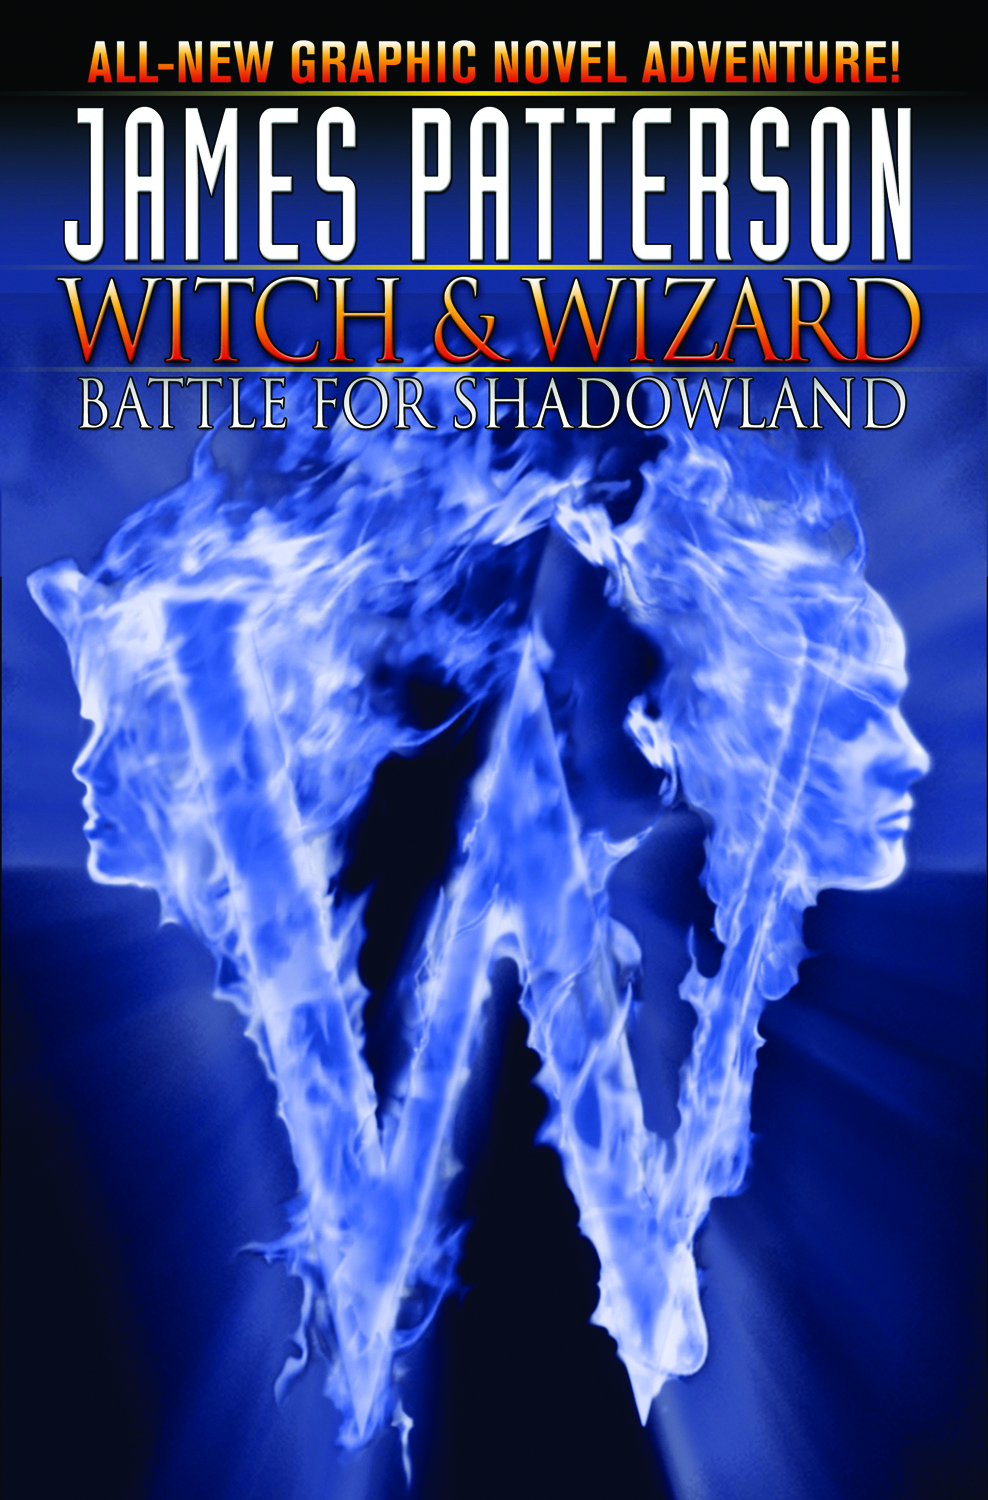 JAMES PATTERSONS WITCH & WIZARD HC VOL 01 BATTLE SHADOWLAND